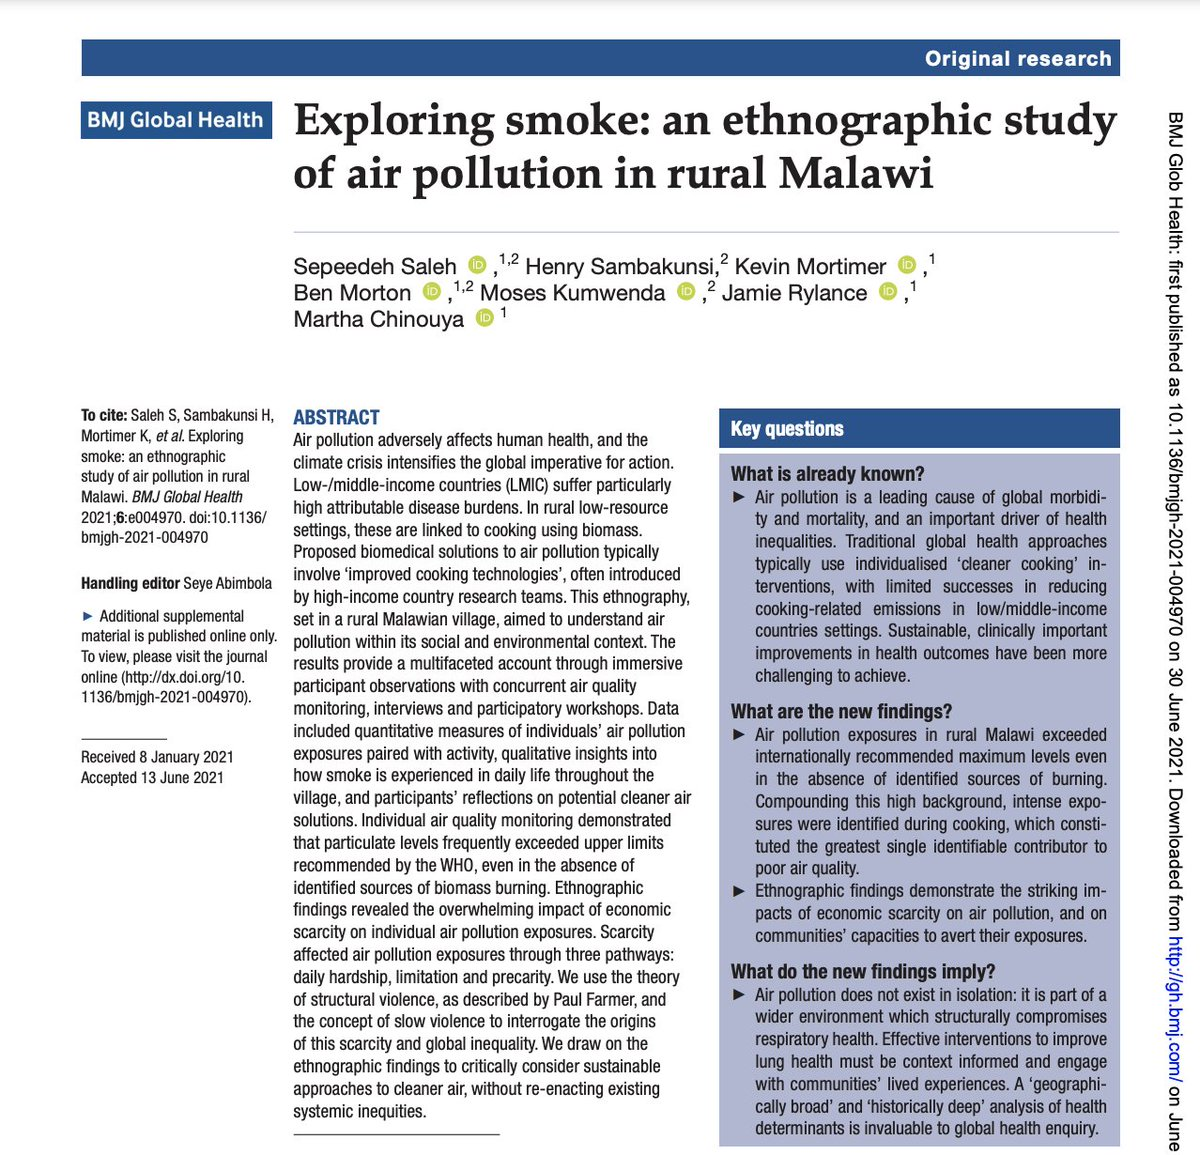 It's publication day! Our baby is out in the big wide world- Exploring smoke: an ethnographic study of air pollution in rural Malawi  https://t.co/krhk80017a https://t.co/9ZNDgL2Gh6